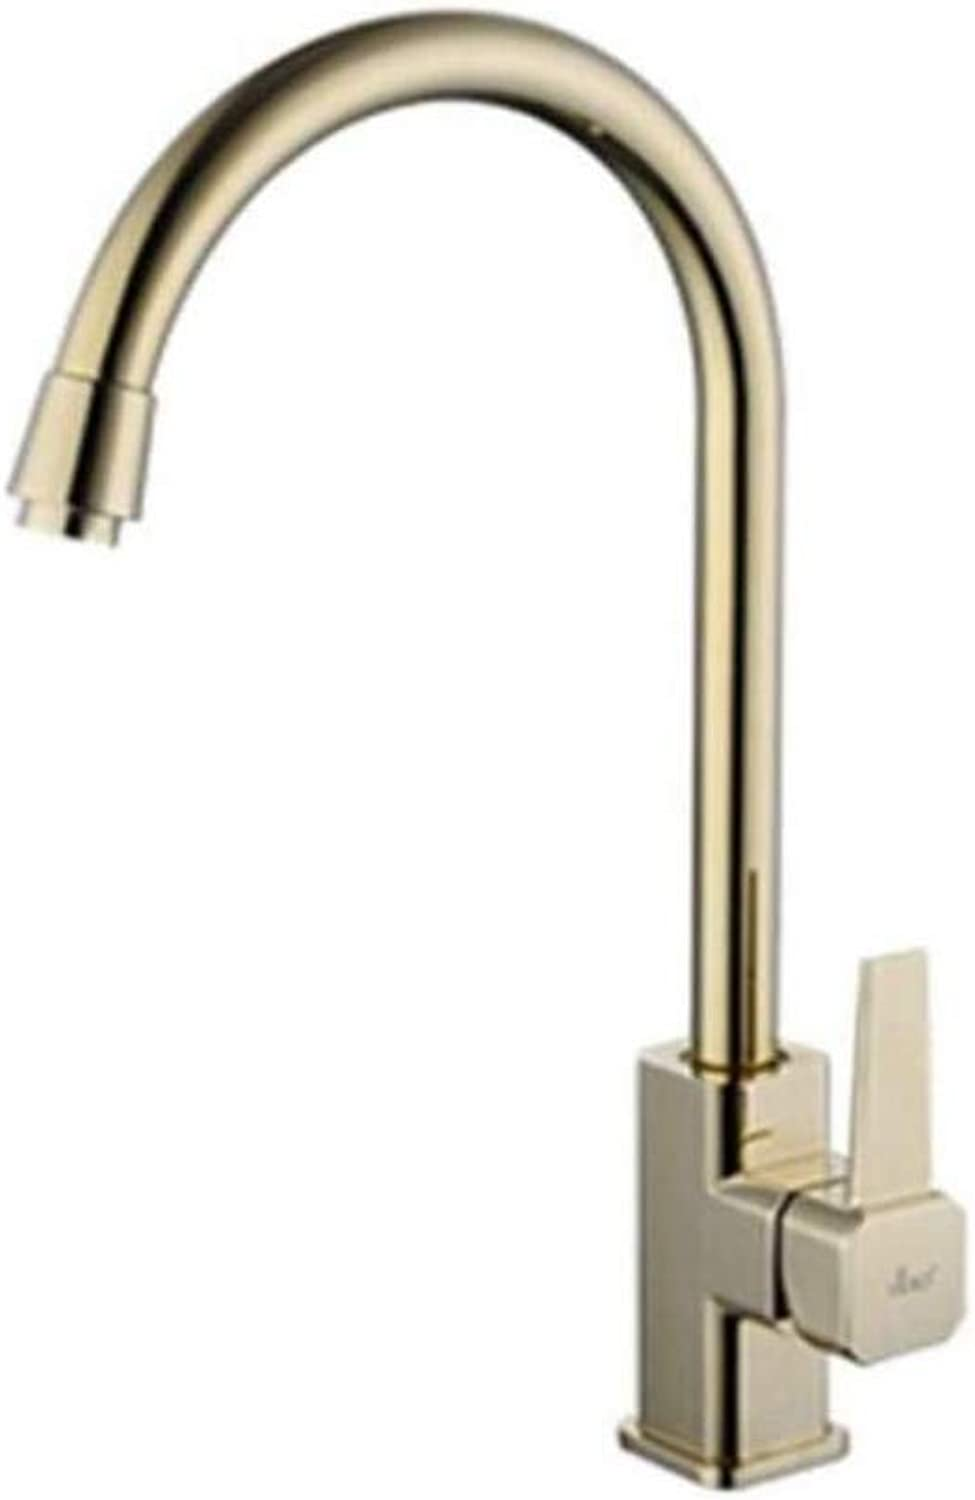 Chrome Kitchen Sink Taptaps Mixer Swivel Faucet Sink Kitchen Can redate The Cold and Hot Water Faucet of Dishwash Basin